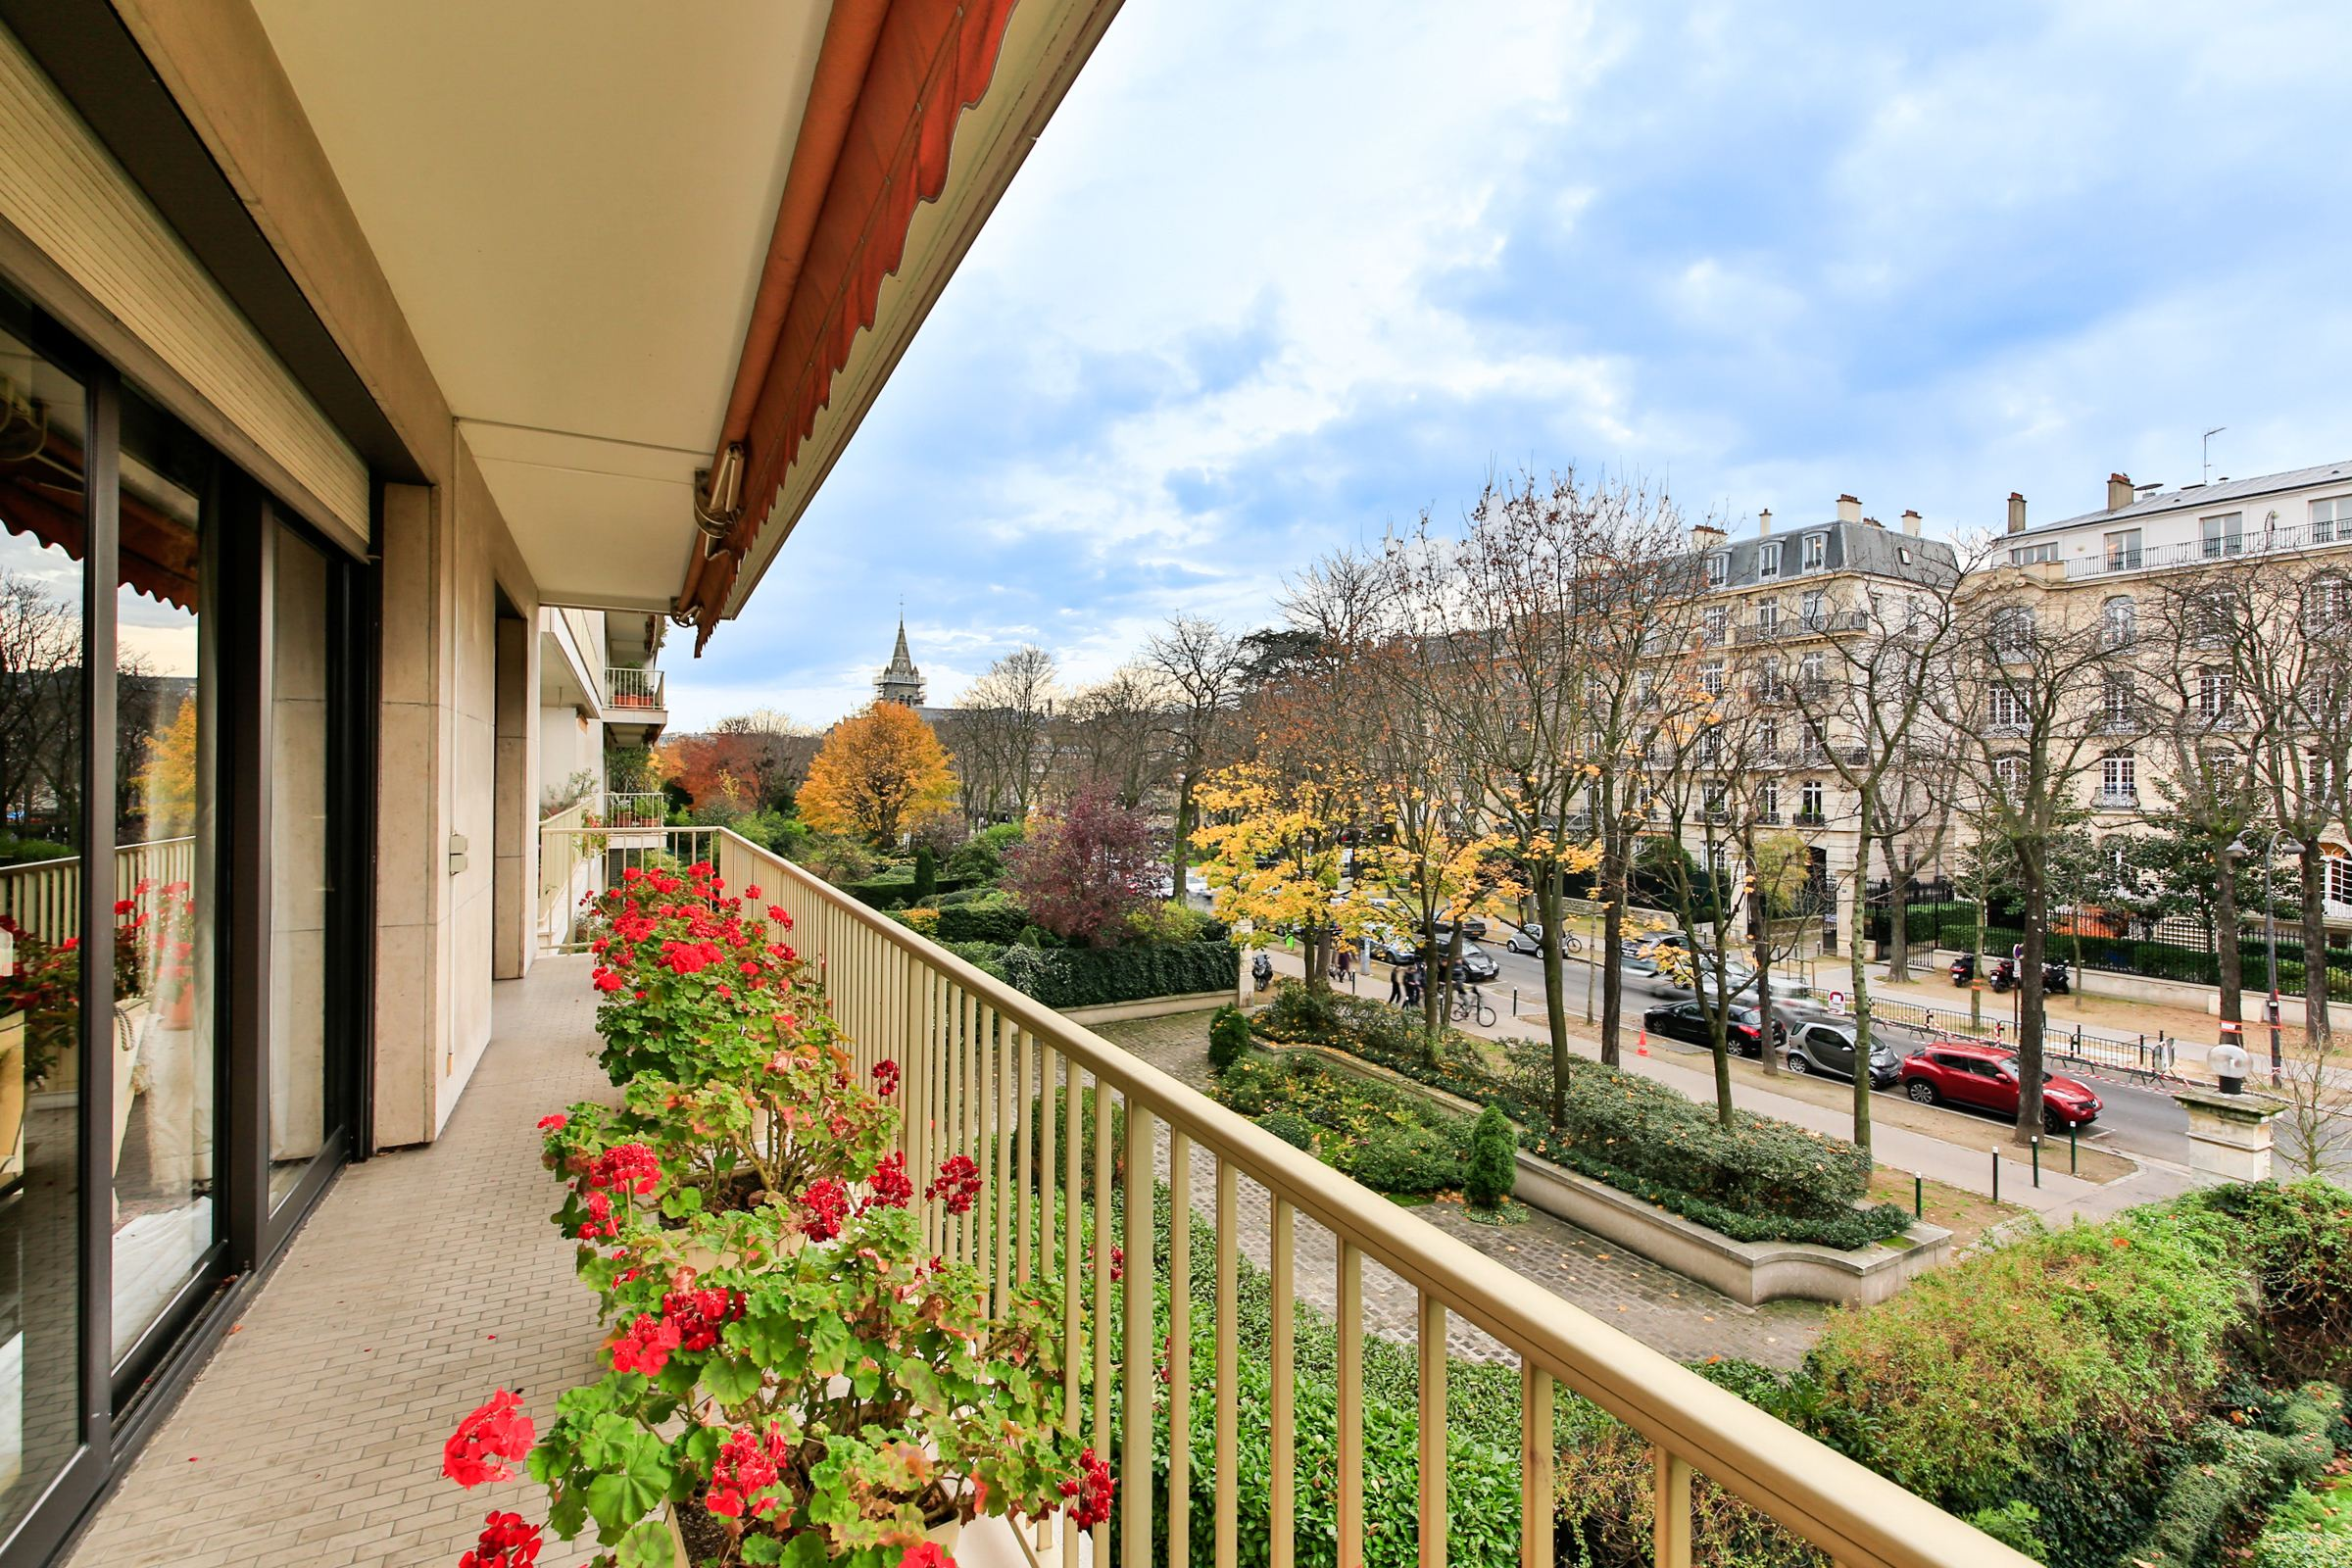 Property For Sale at Neuilly - Pasteur. A 146 sq.m apartment + balcony/terrace of 30 sq.m